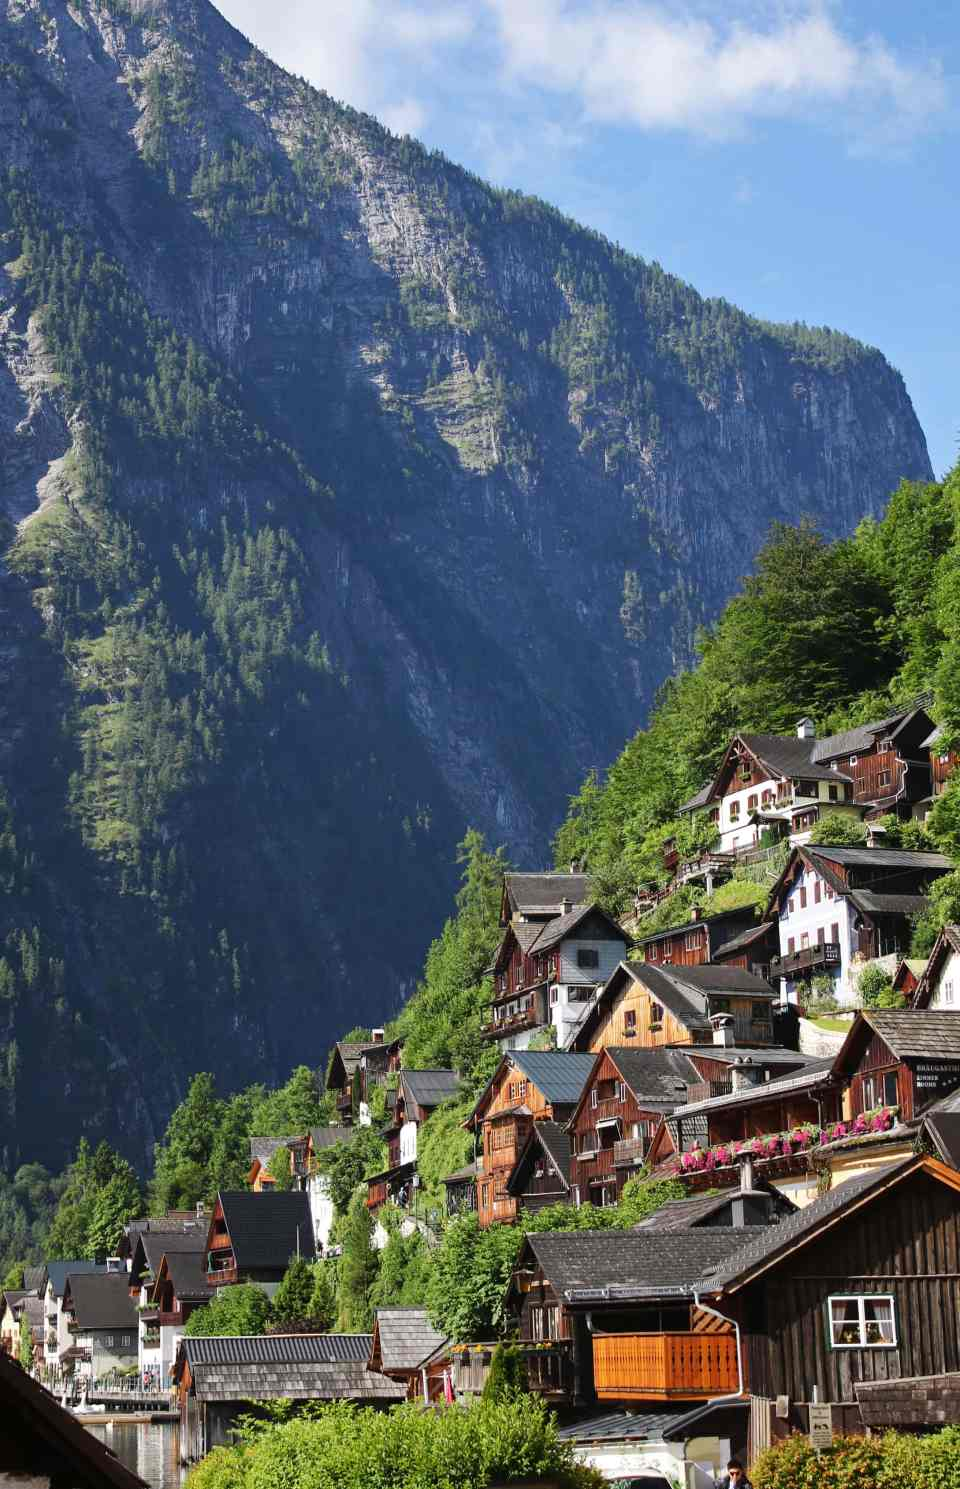 Houses built into hillside at Hallstatt